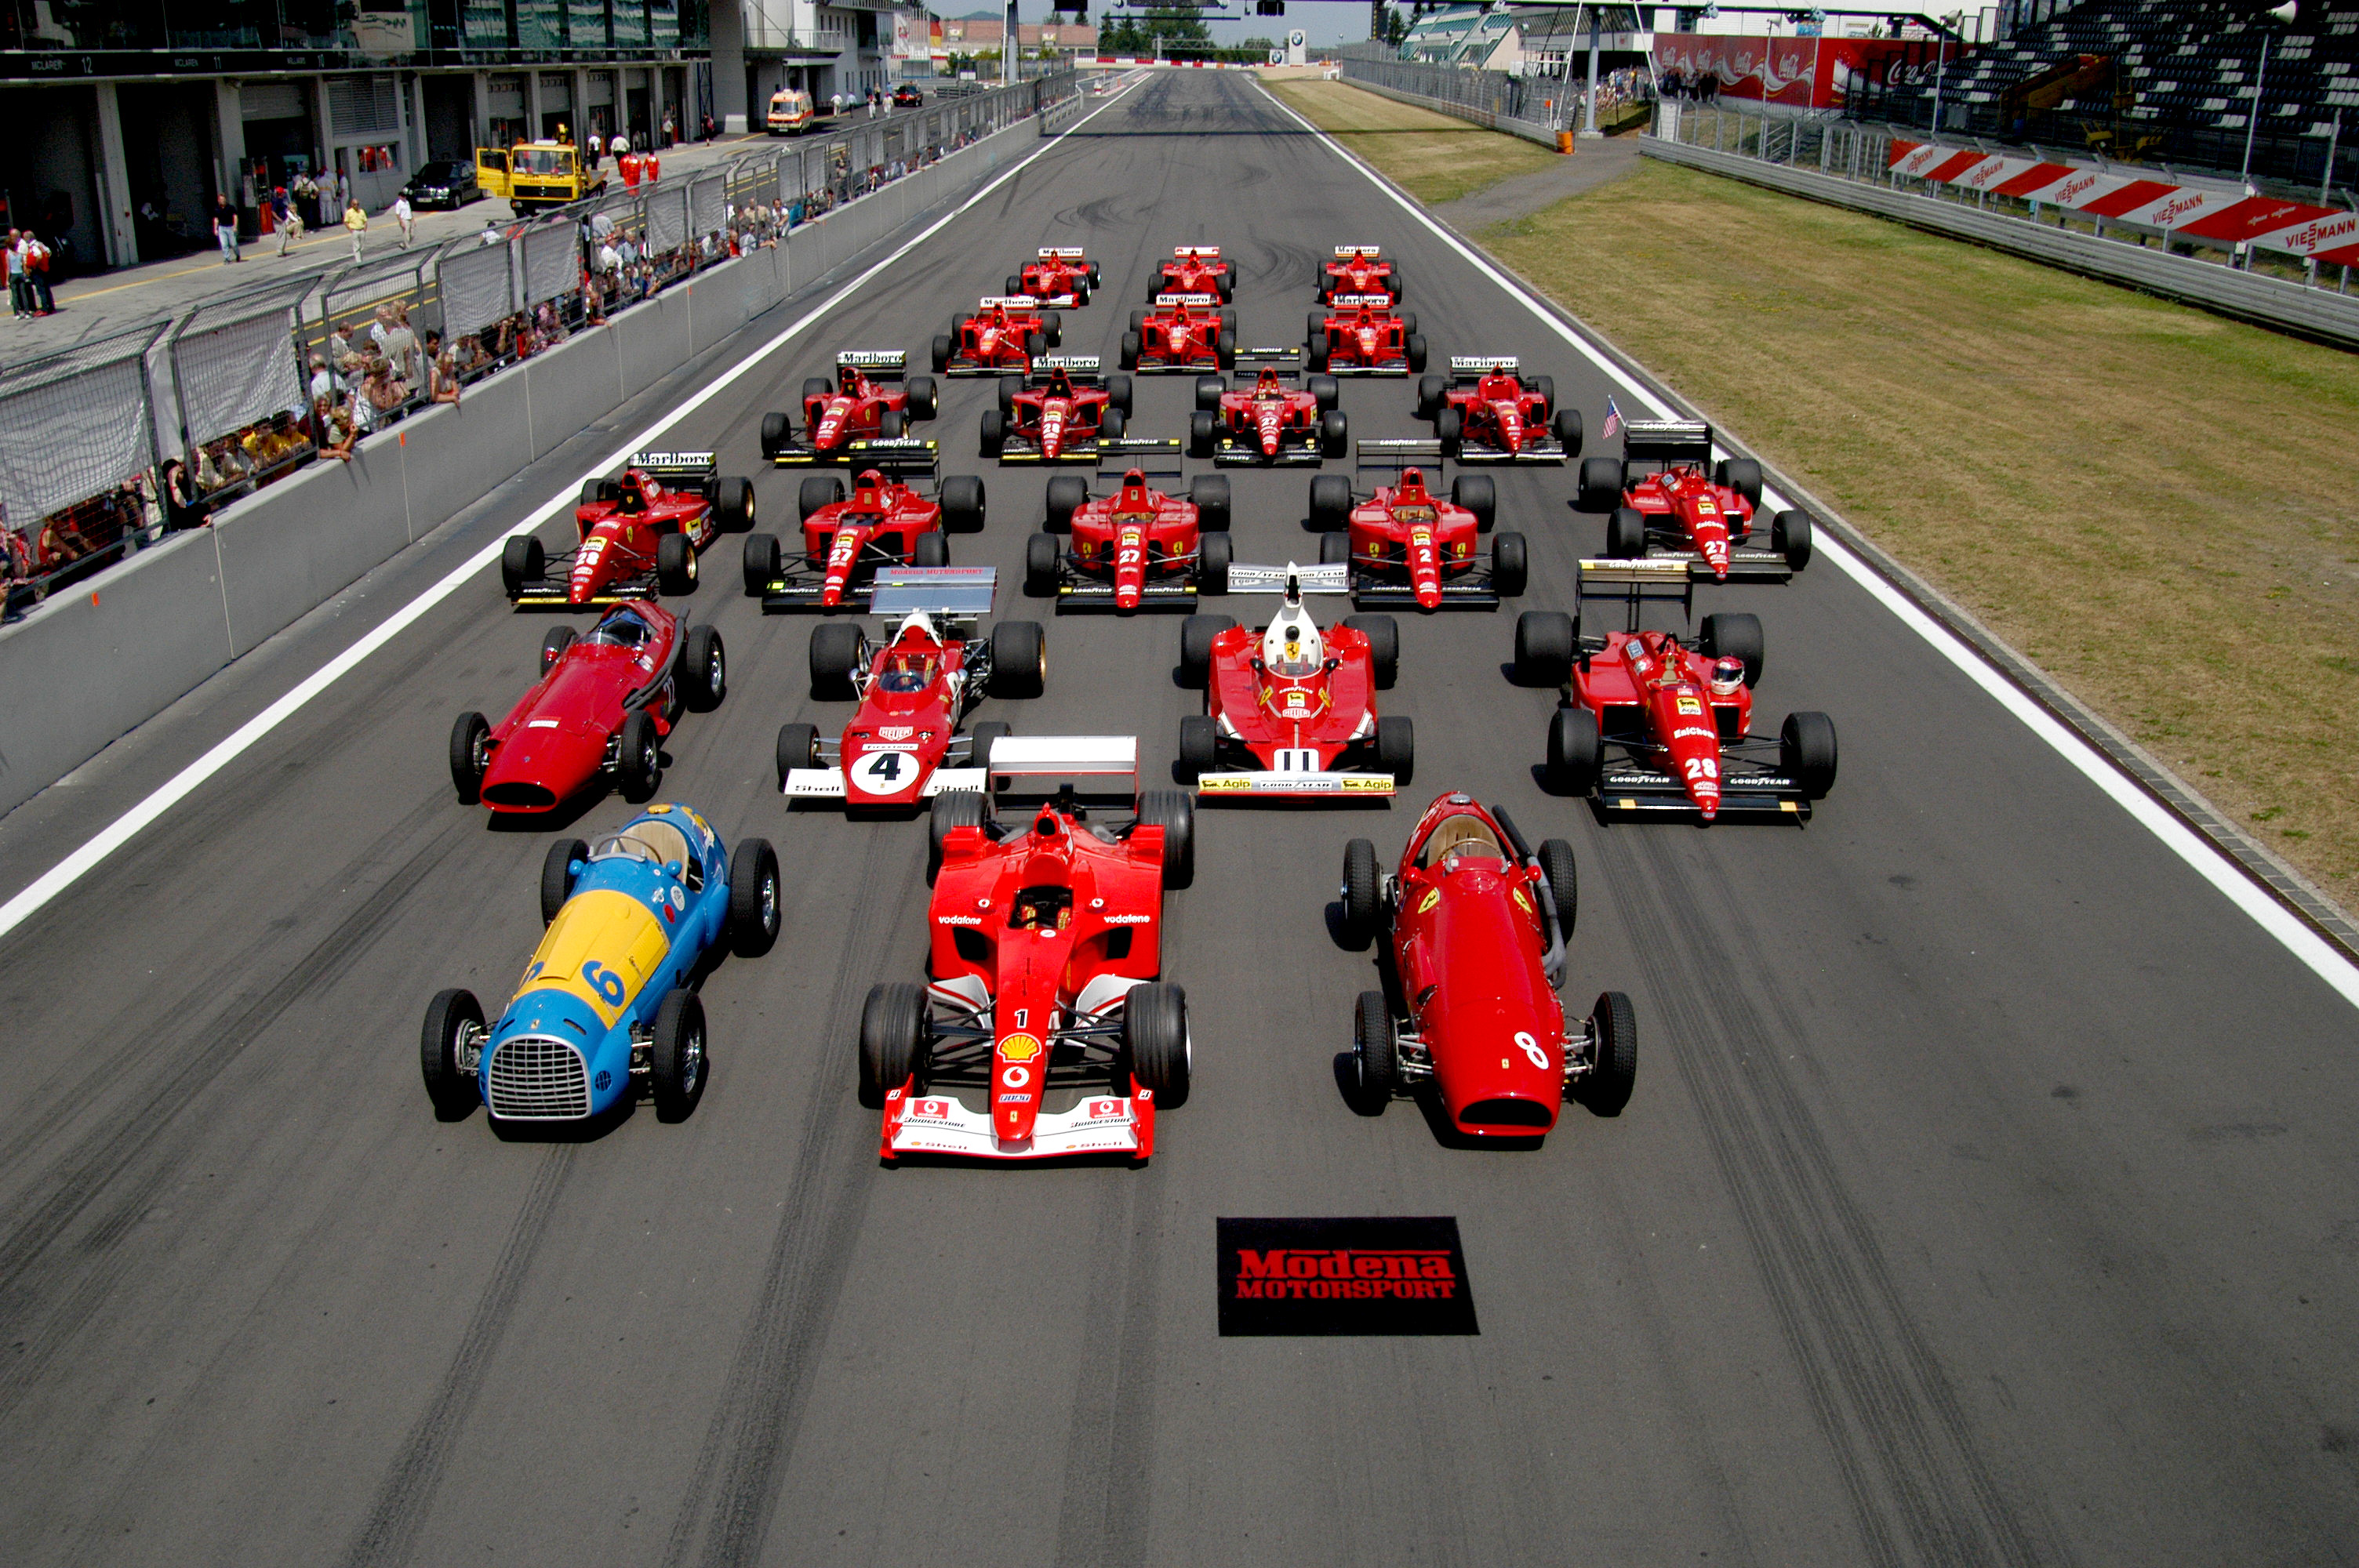 World Champion Team Ferrari